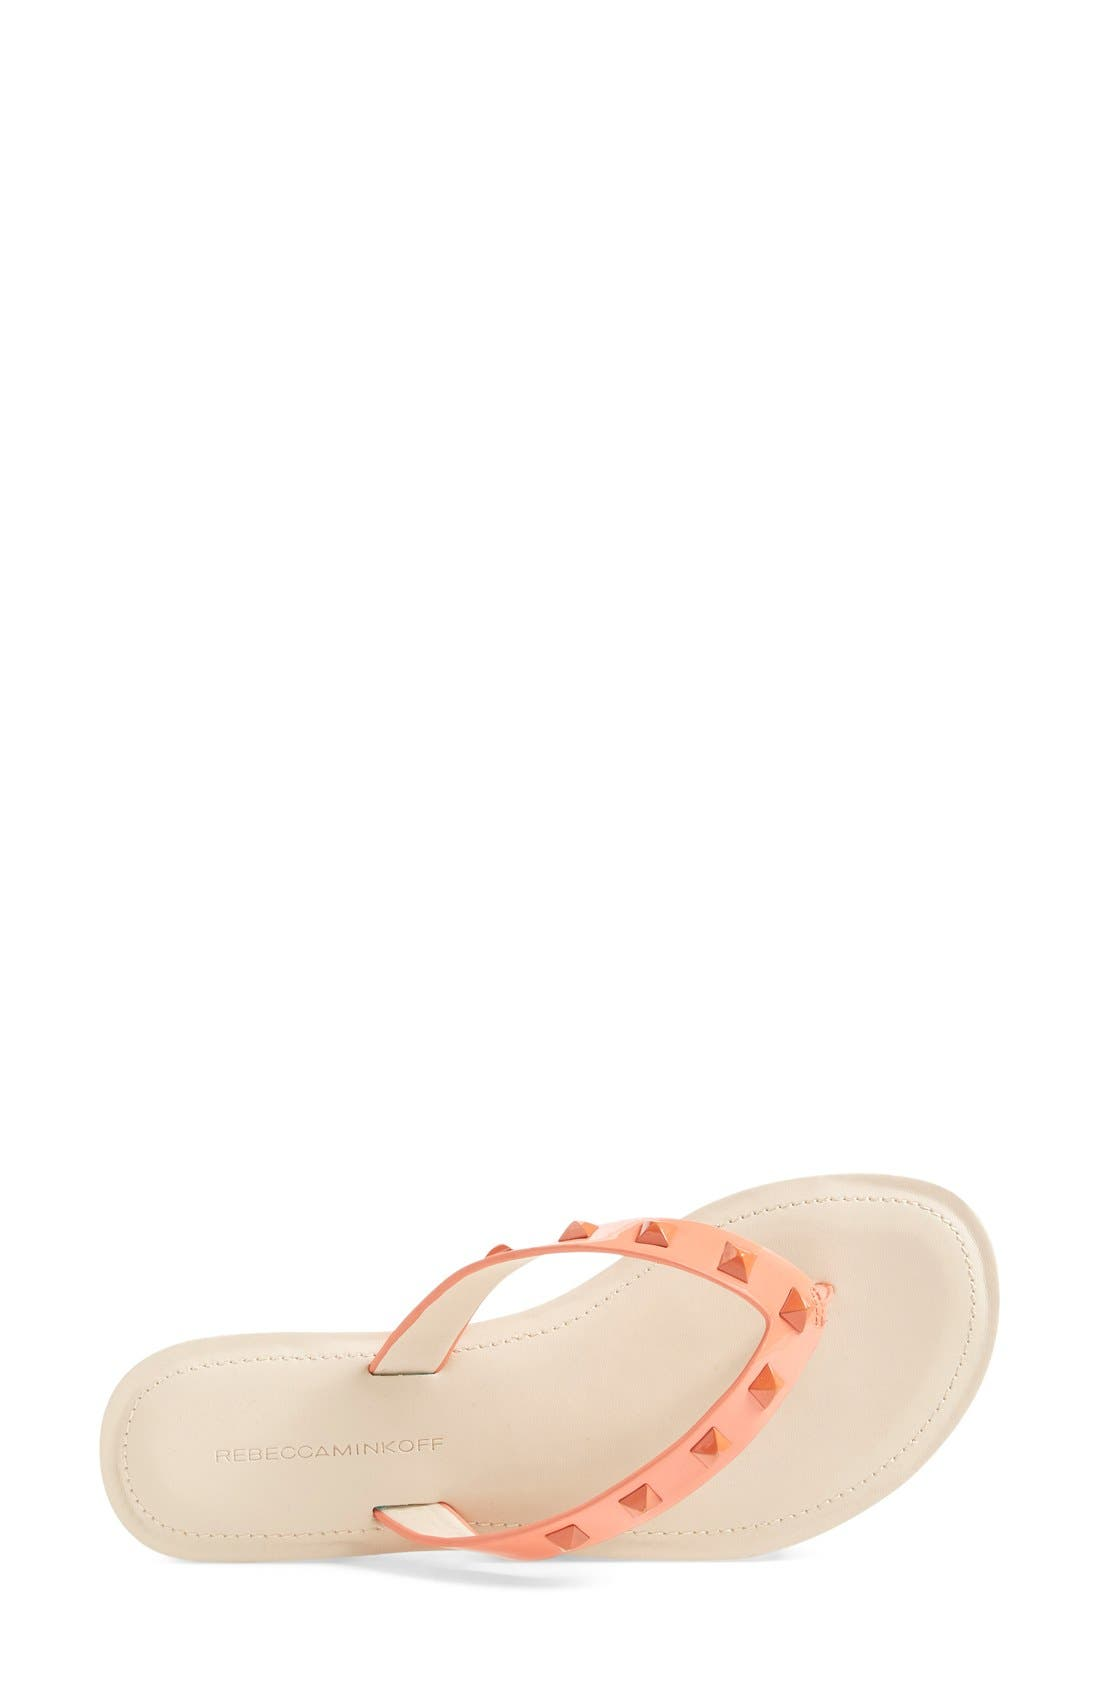 Alternate Image 3  - Rebecca Minkoff 'Fiona' Thong Sandal (Women)